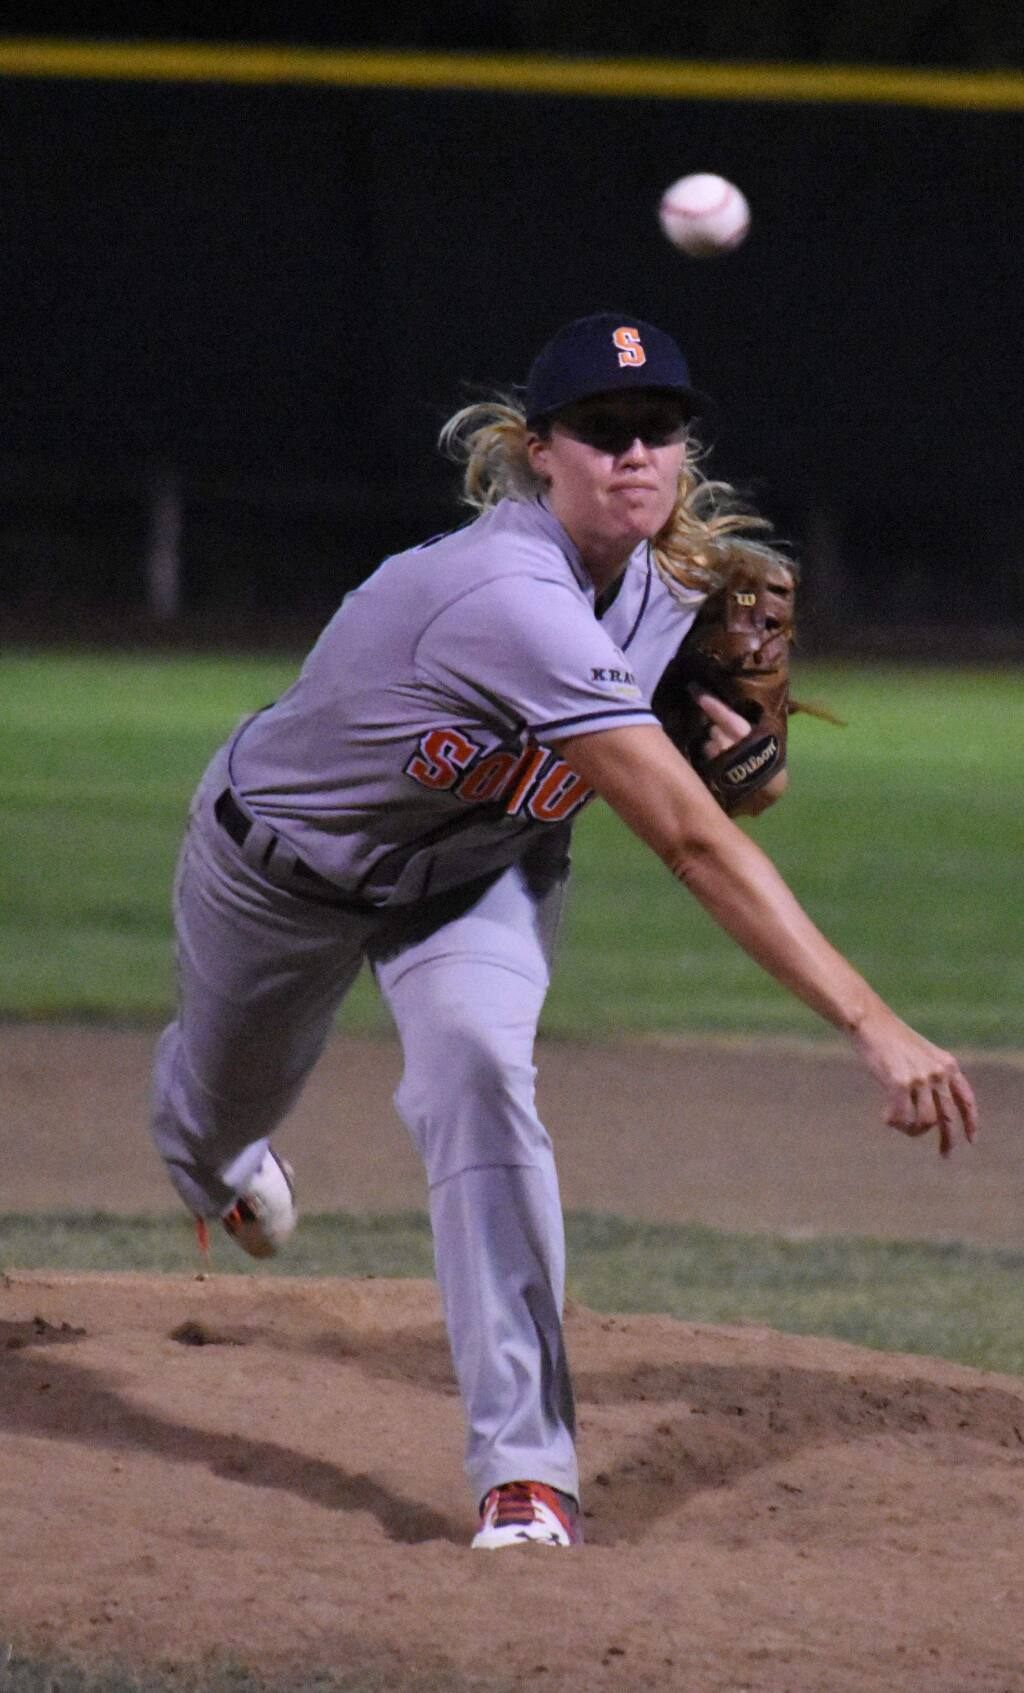 Sonoma Stompers pitcher Stacy Piagno. (James W. Toy III / Sonoma Stompers)